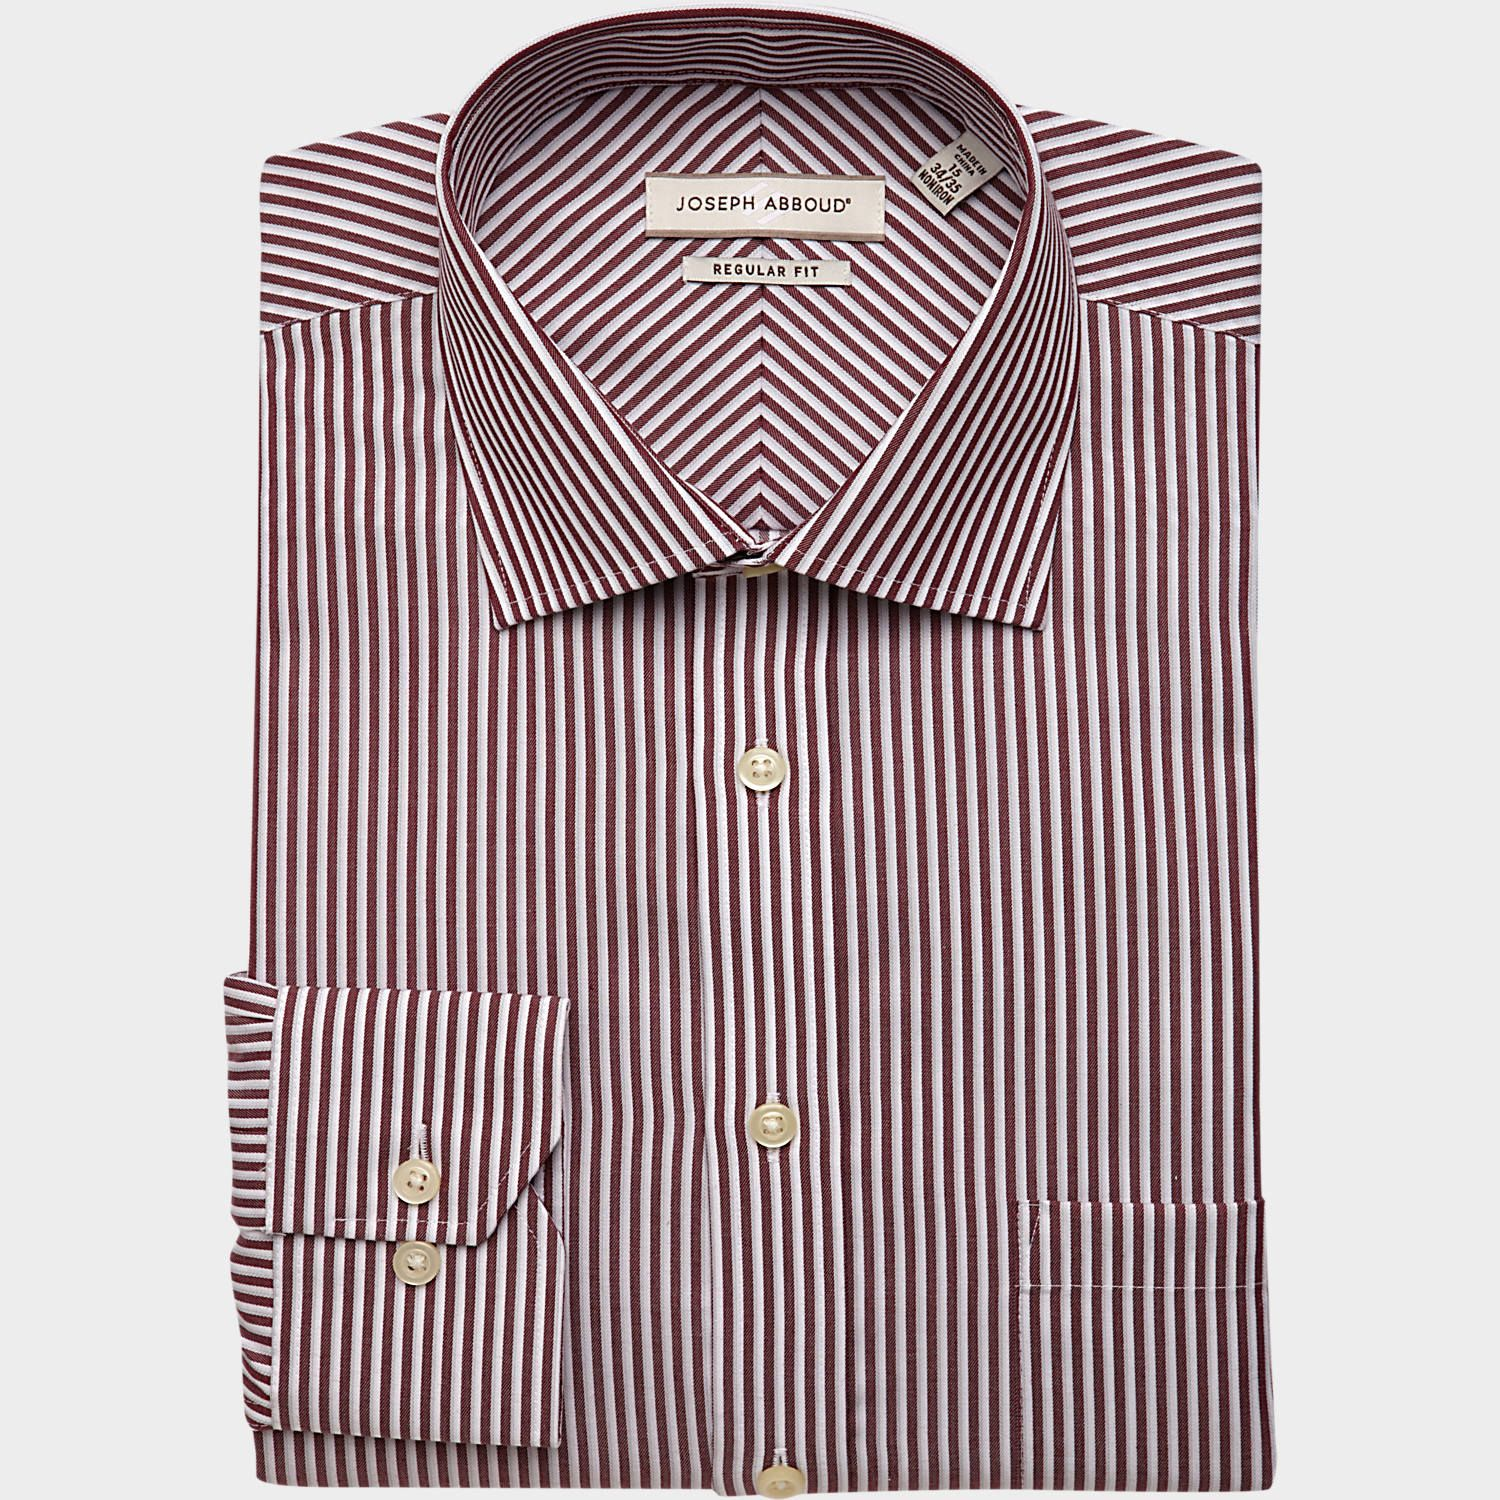 Joseph Abboud Burgundy Stripe Classic Fit Dress Shirt Classic